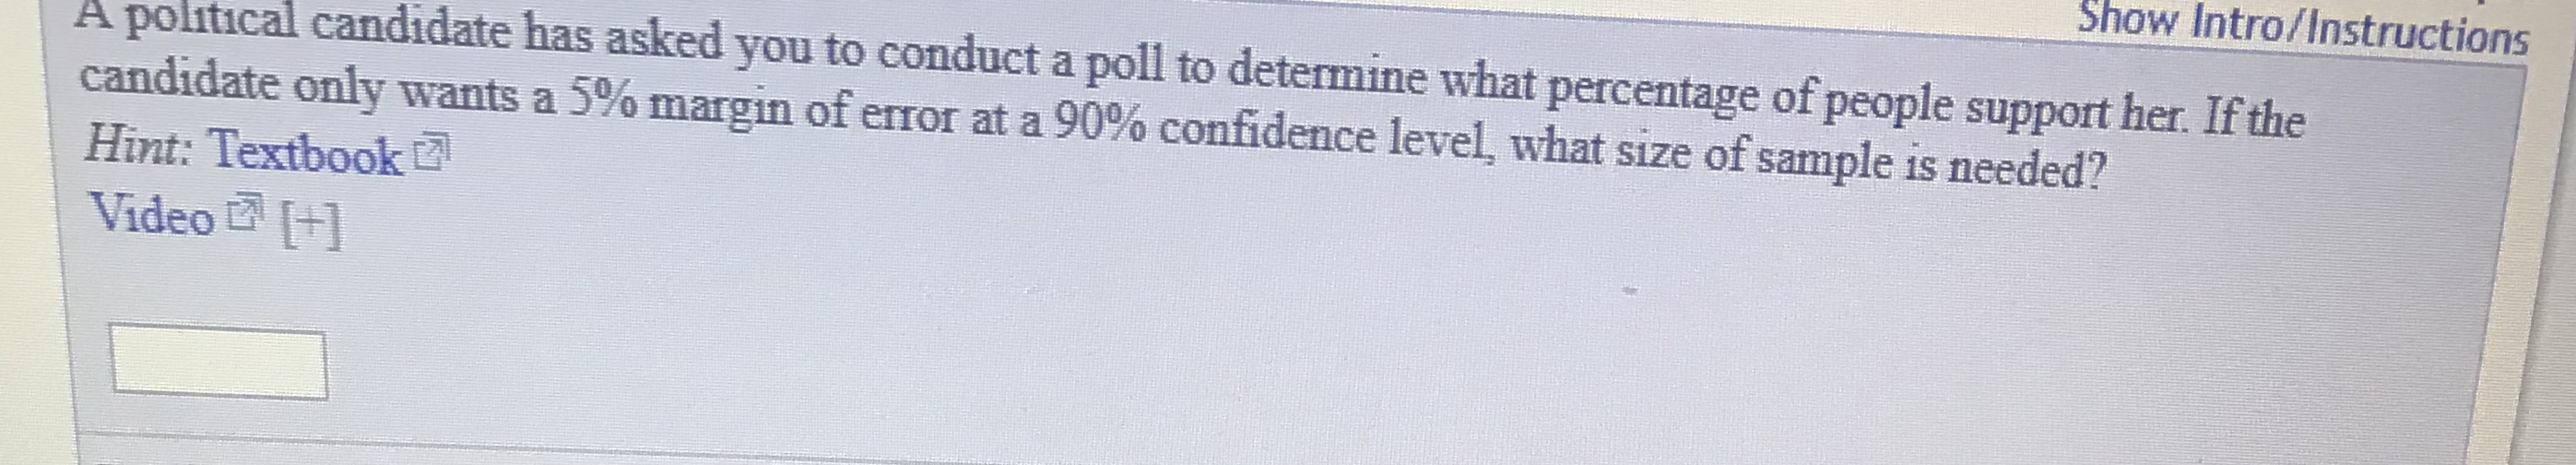 Show Intro/Instructions A political candidate has asked you to conduct a poll to determine what percentage of people support her. If the candidate only wants a 5% margin of error at a 90% confidence level, what size of sample is needed? Hint: Textbook Video +1